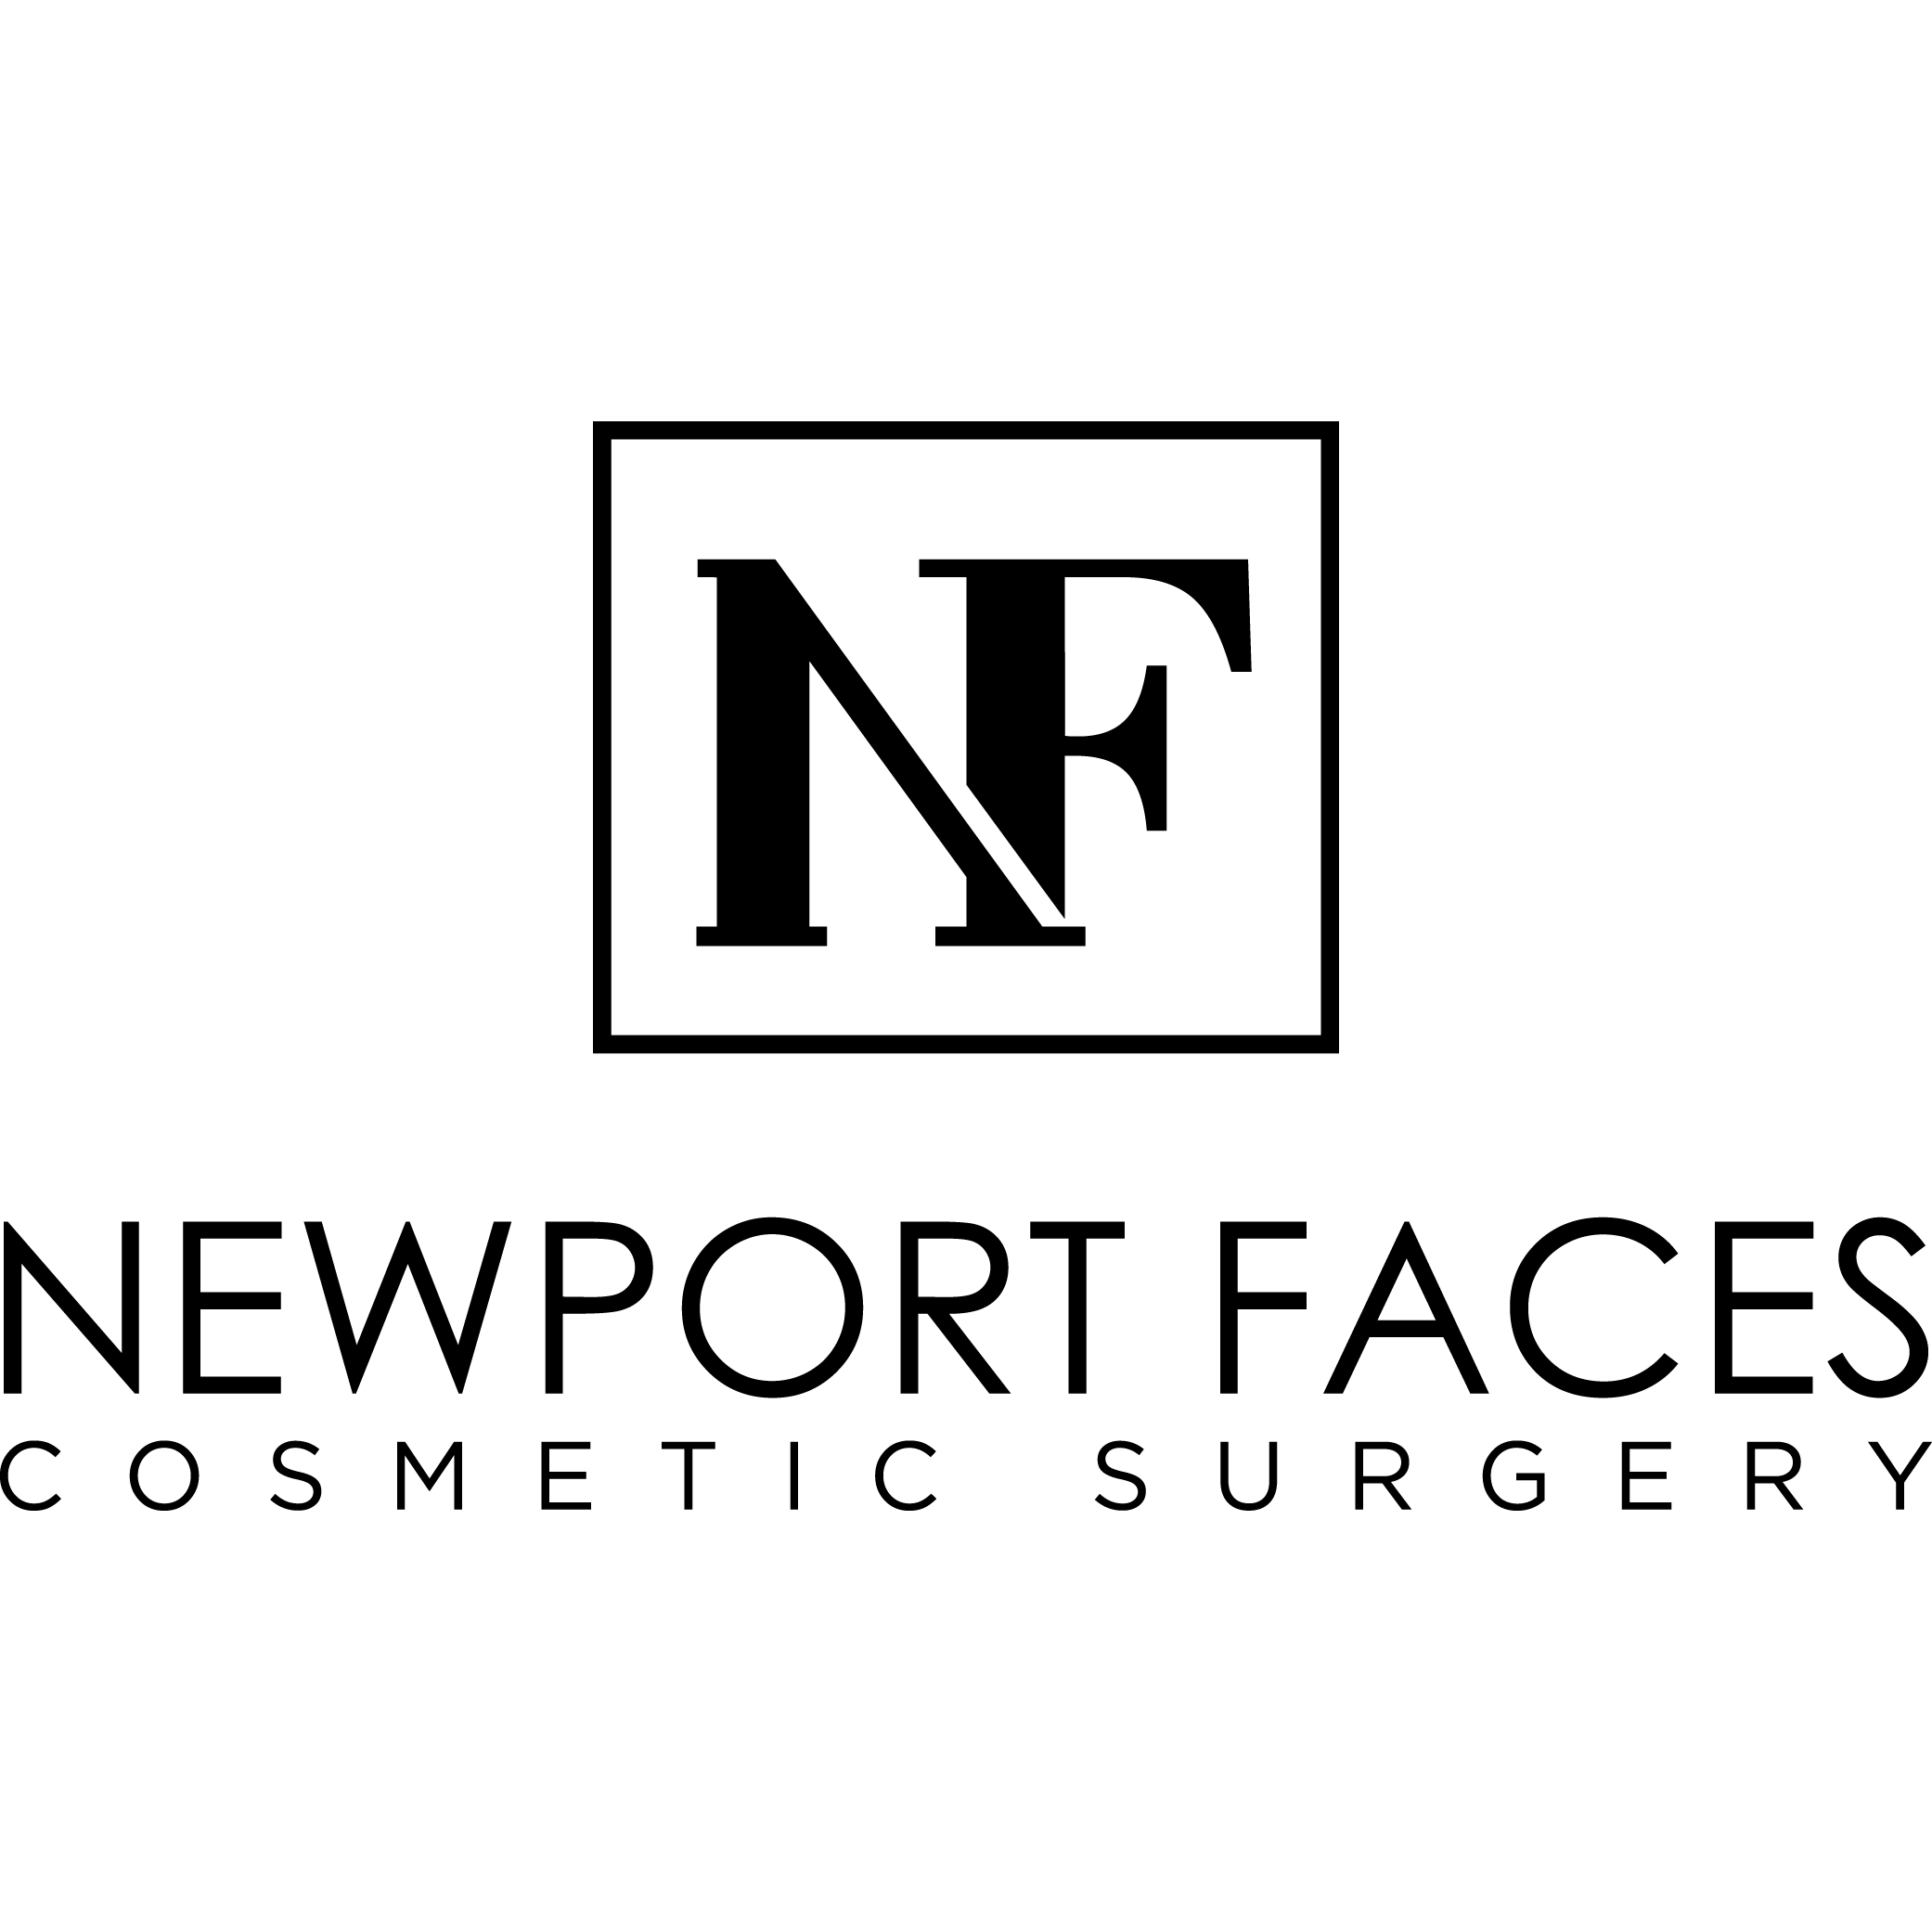 Newport Faces Cosmetic Surgery